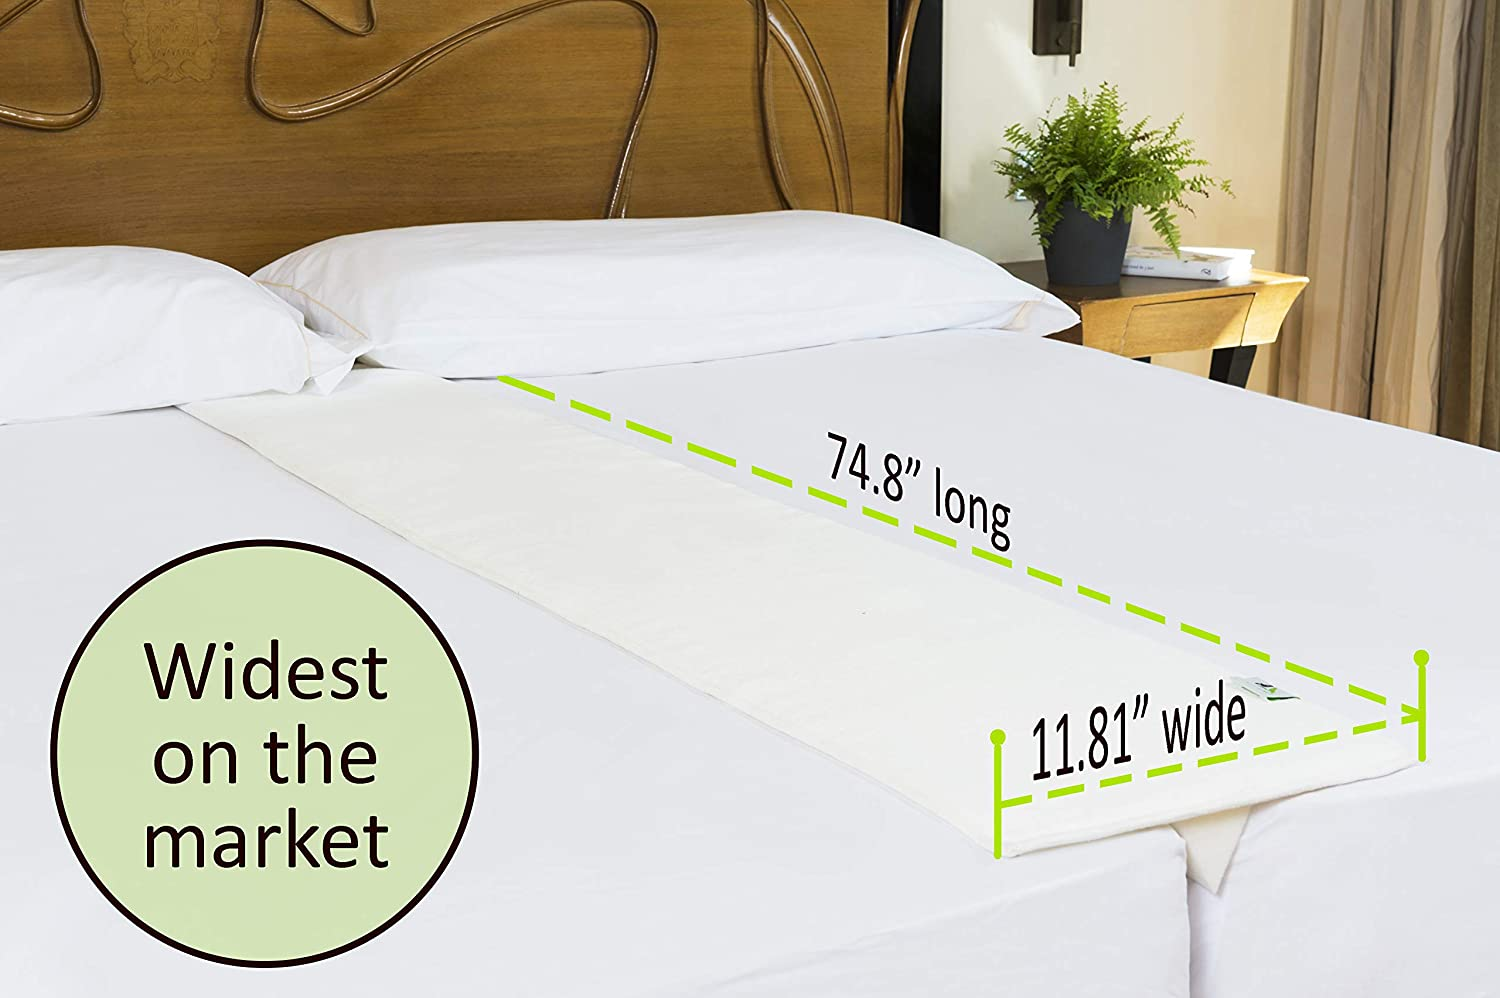 Bed Connector for Two Single mattresses XL XL Twin beds into Double Bed Great for Guest Stay Overs Insieme Bed Bridge Twin Easily Convert to King Converter